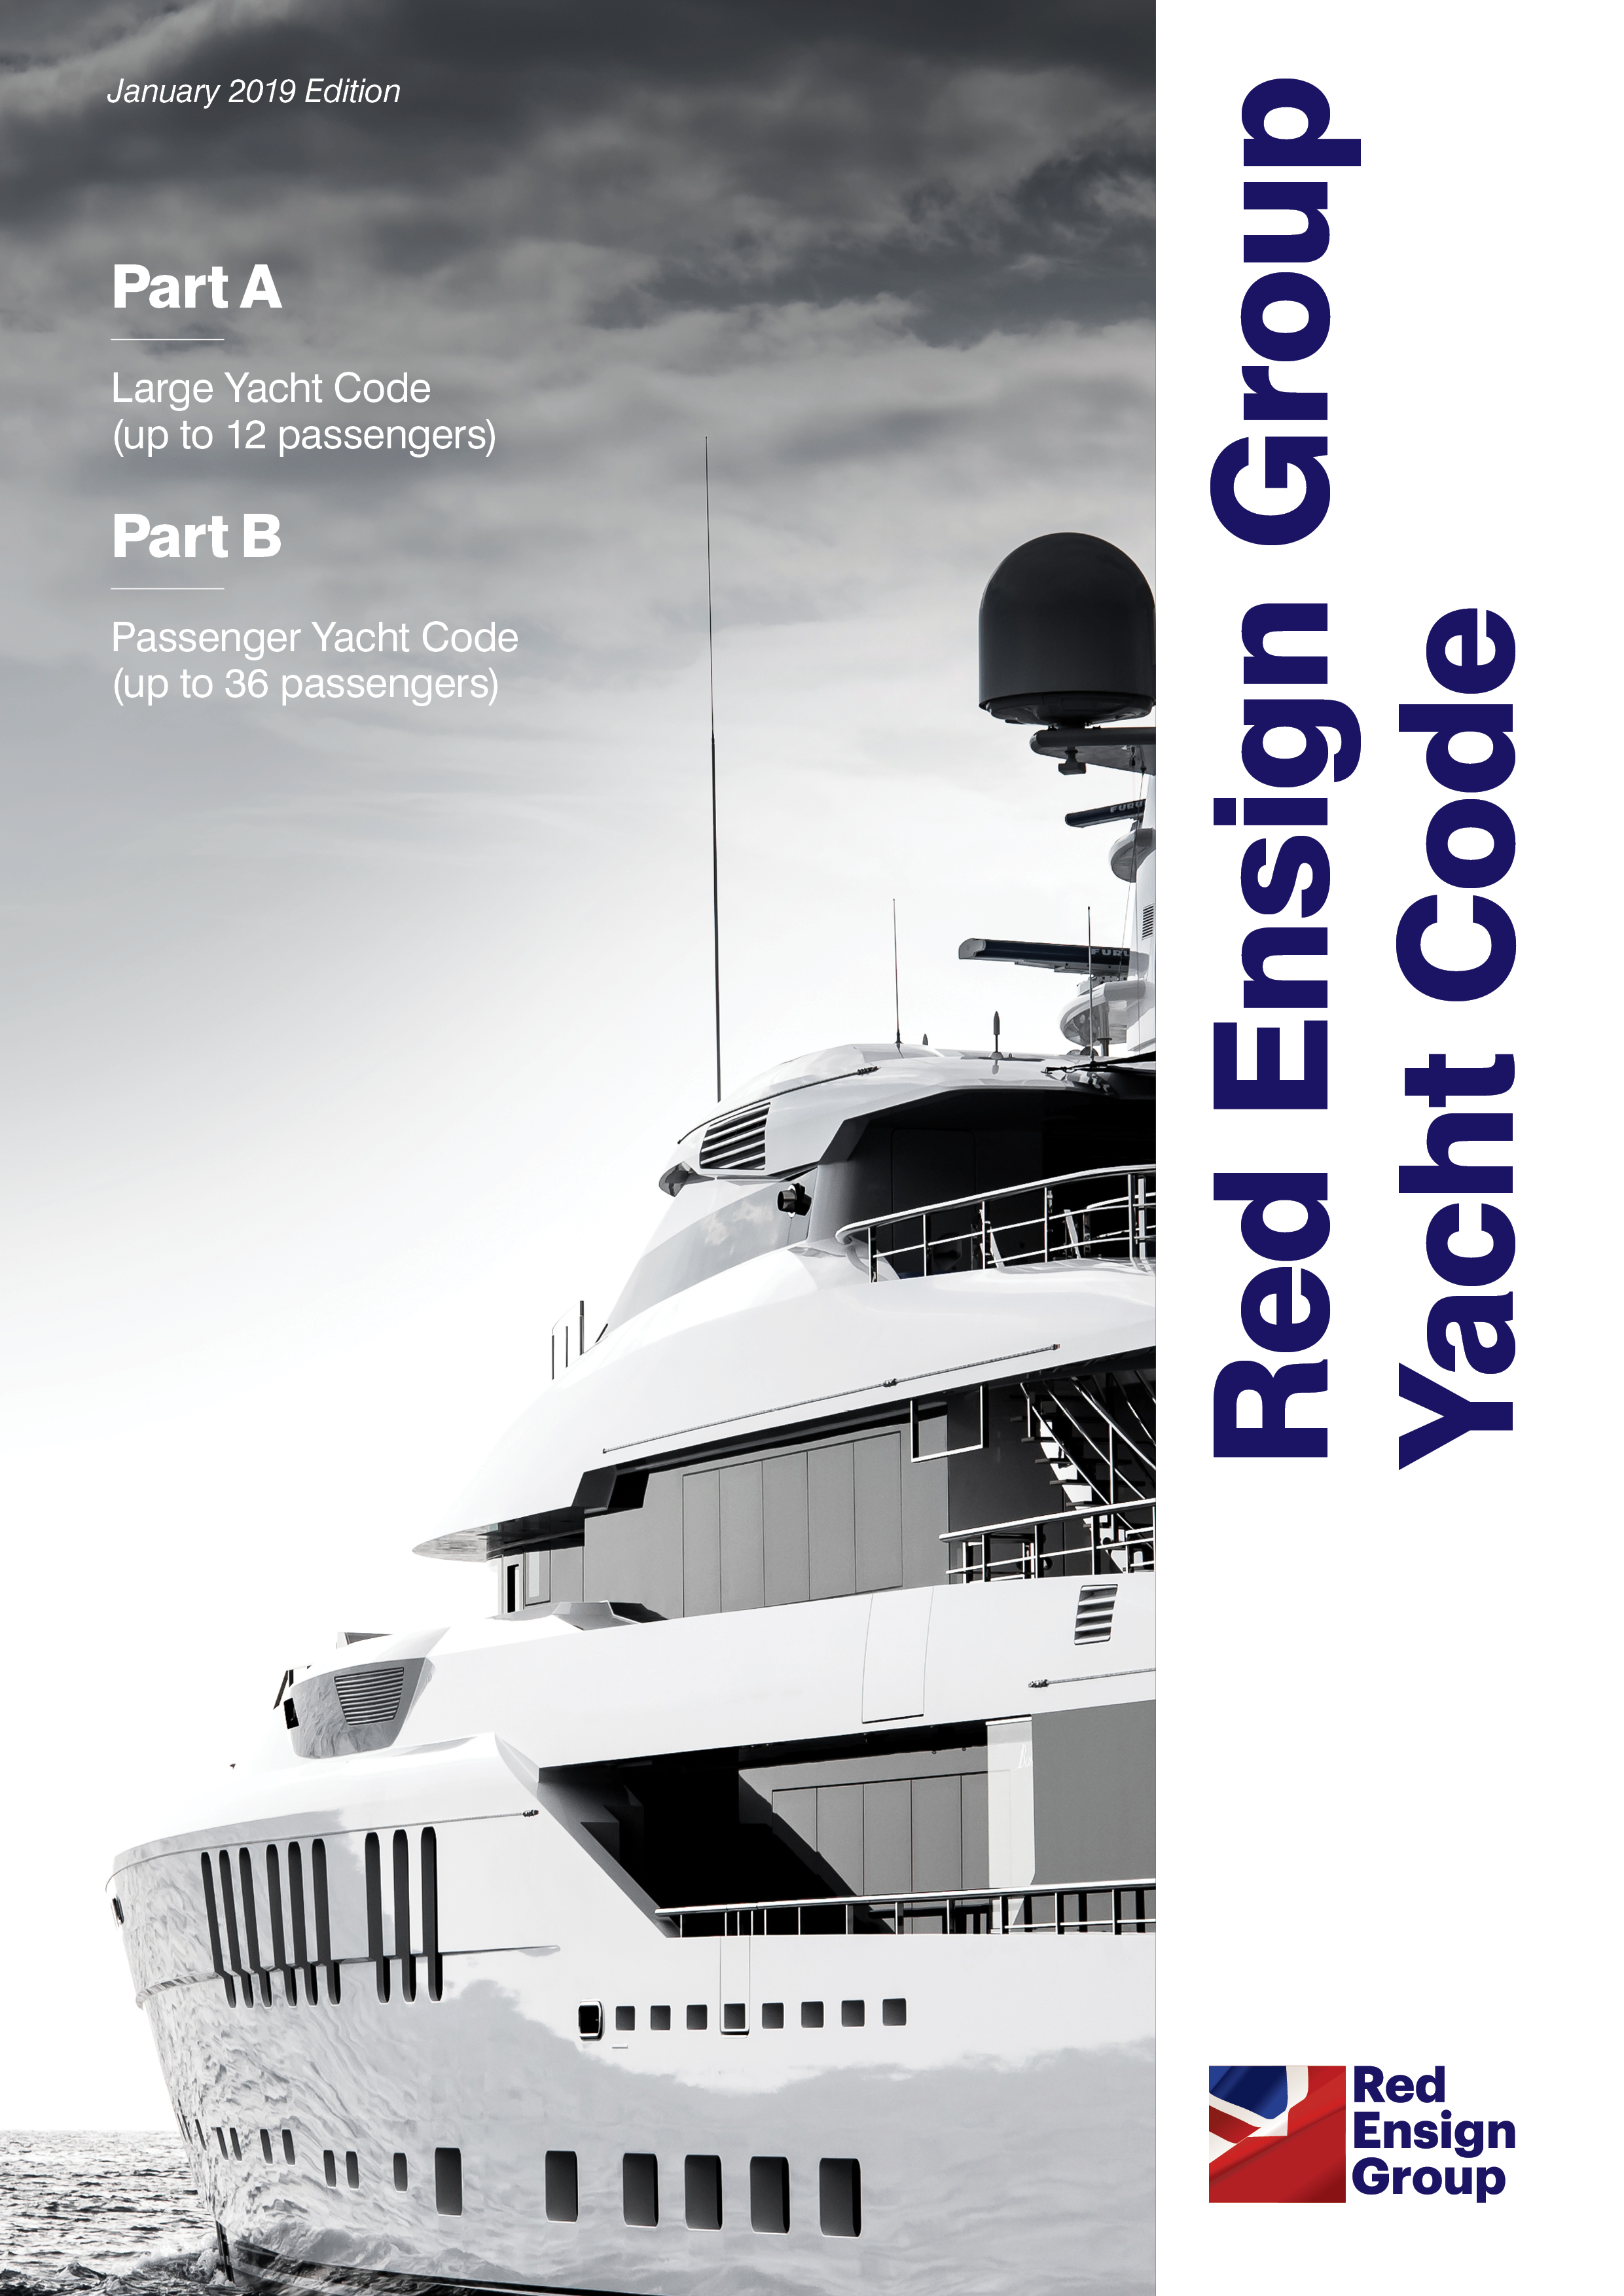 New Red Ensign Group Yacht code launched